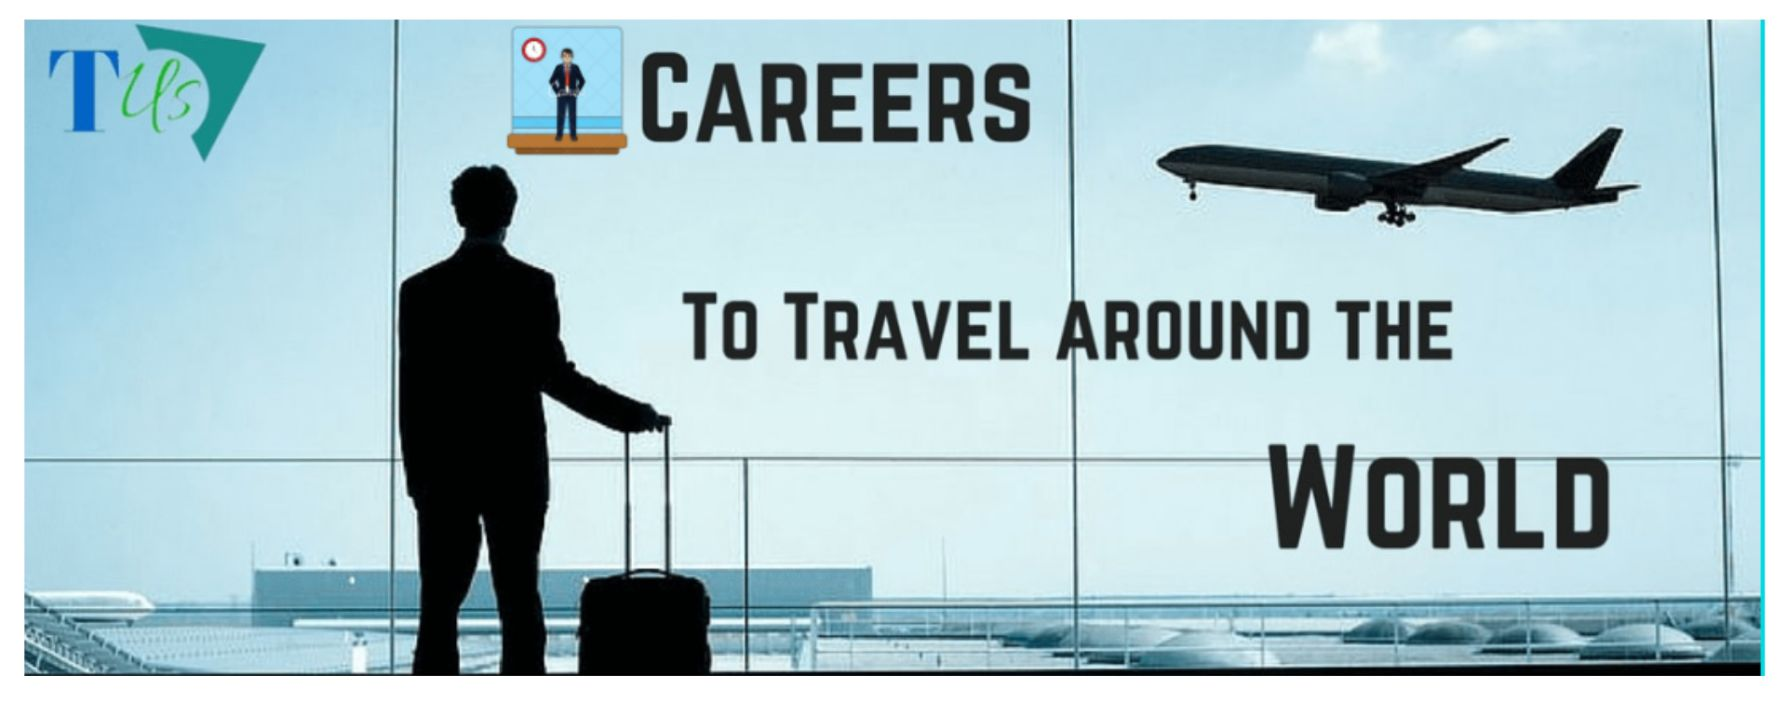 Jobs that can make you fly around the world